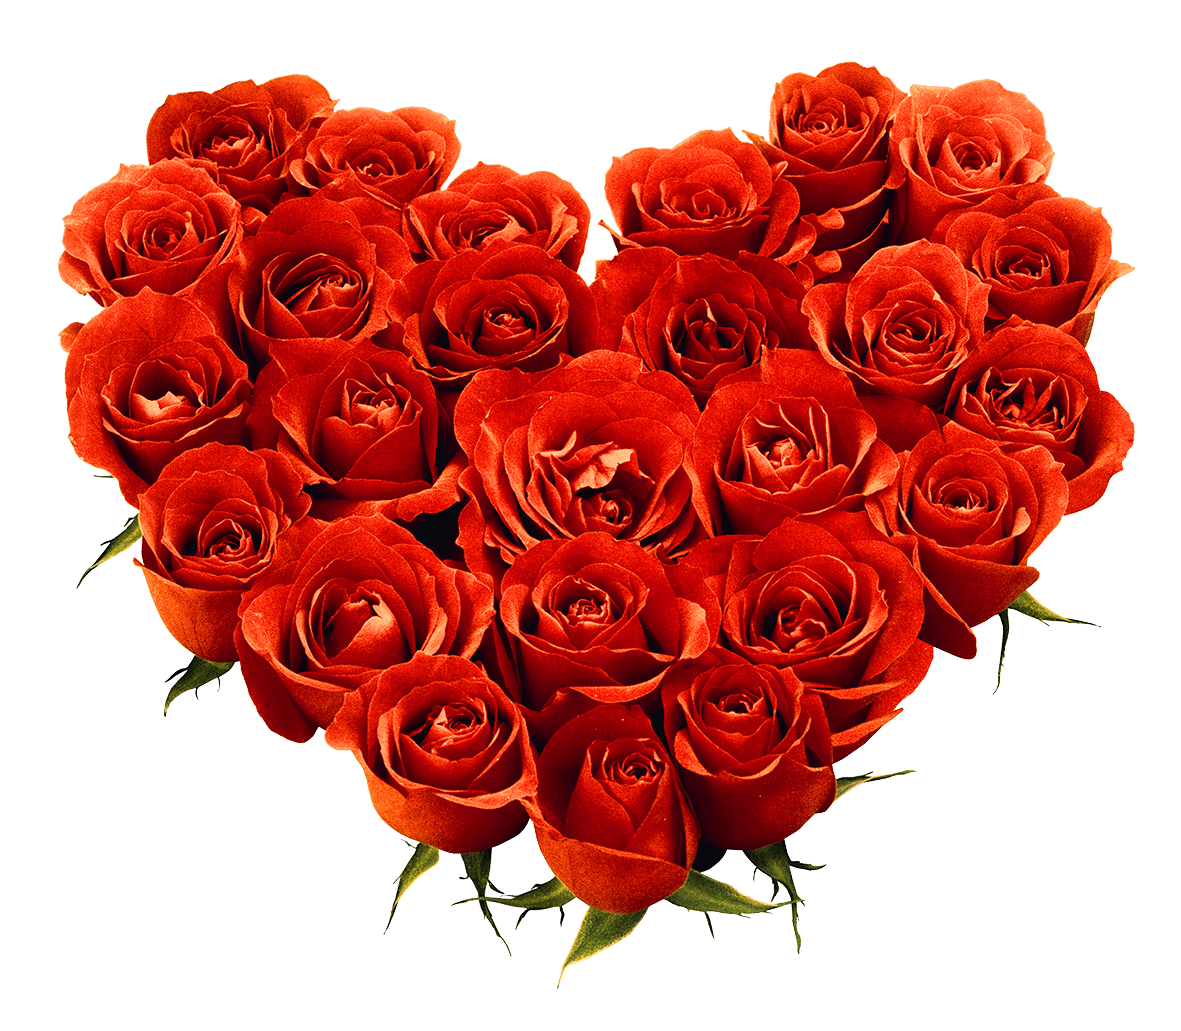 Bouquet Of Roses Png Image Picture Download PNG Image